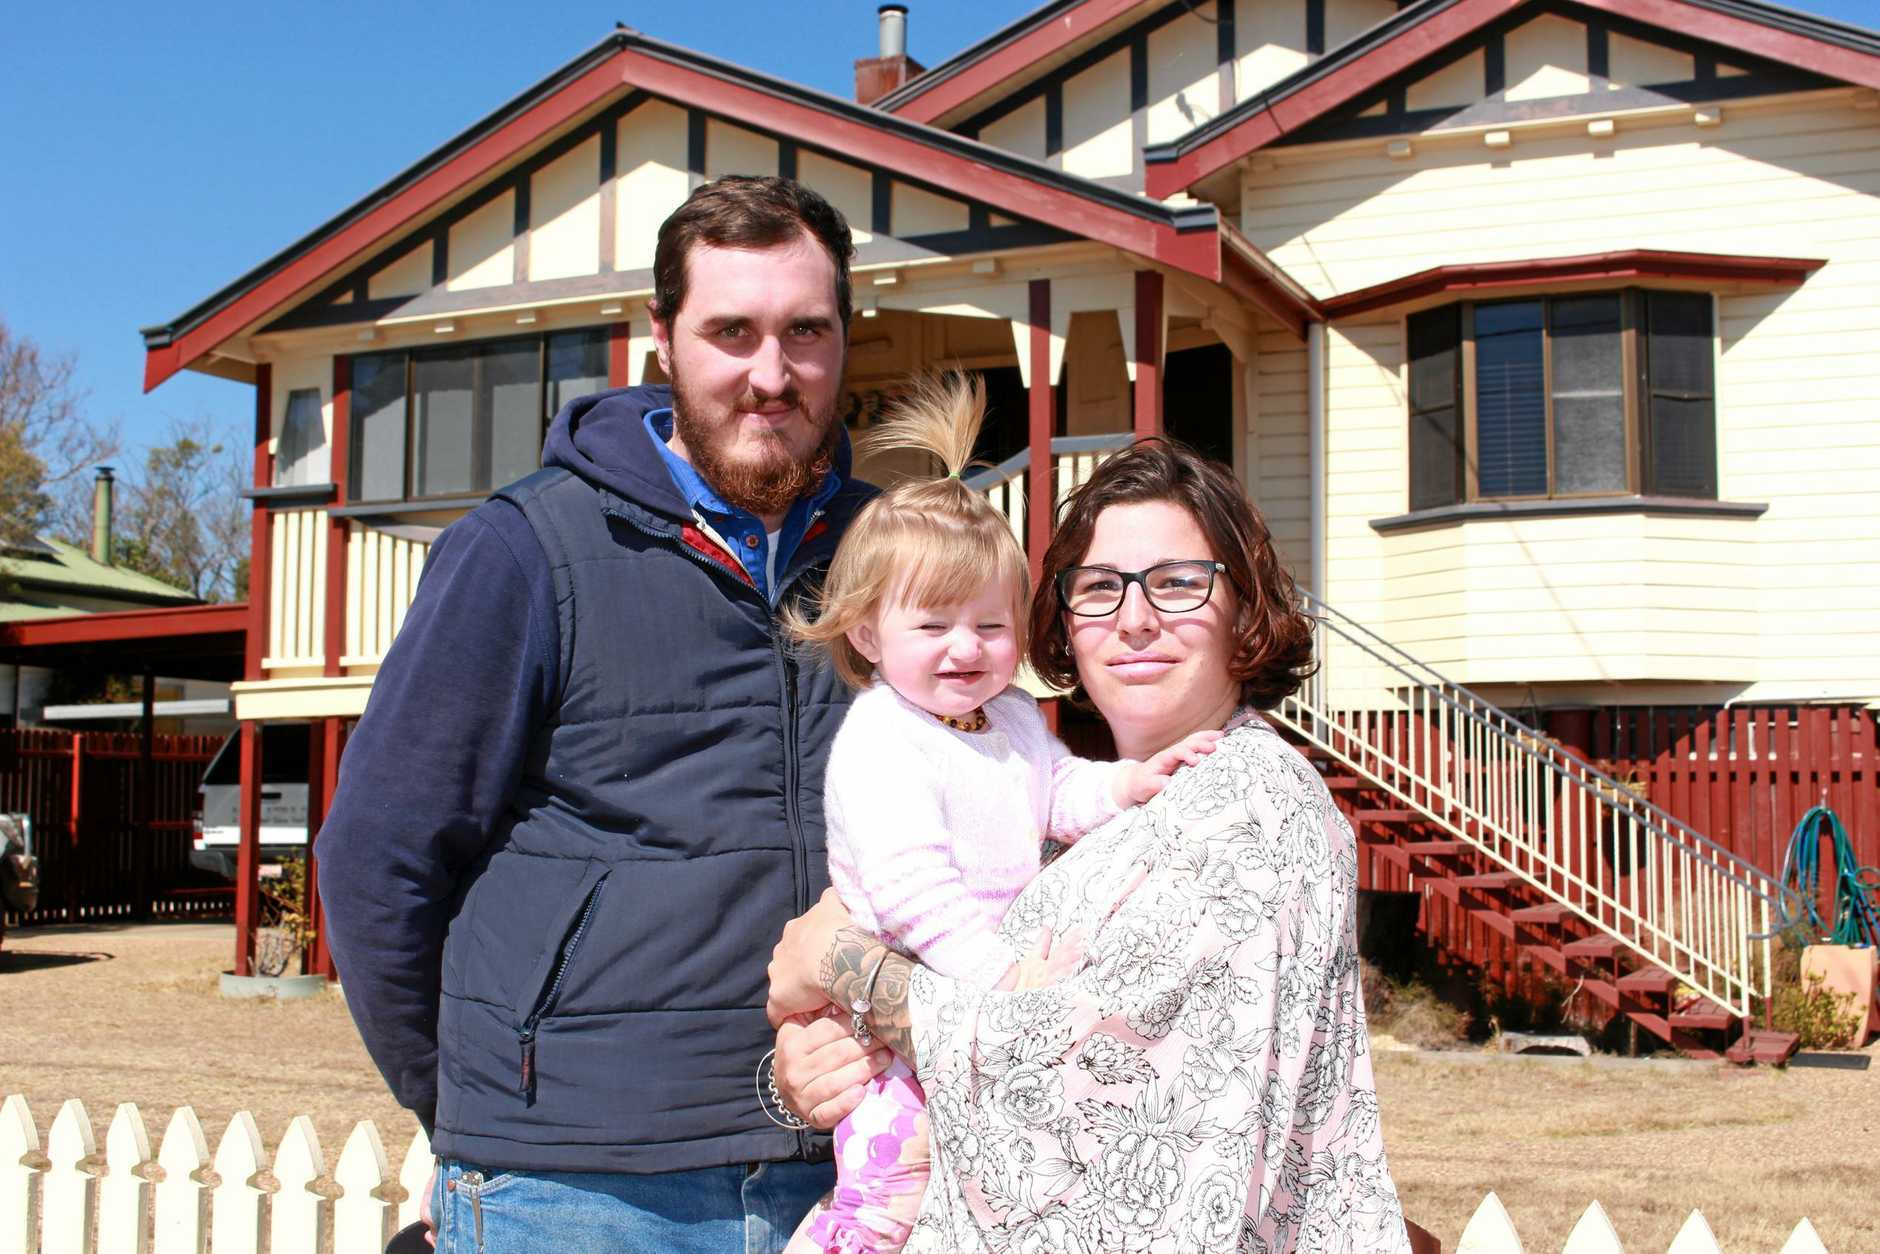 SAFETY CONCERN: Ben and Emmelene McDonald don't want their one-year-old daughter Delilah put in danger by hoons driving recklessly through the roundabout near their house.